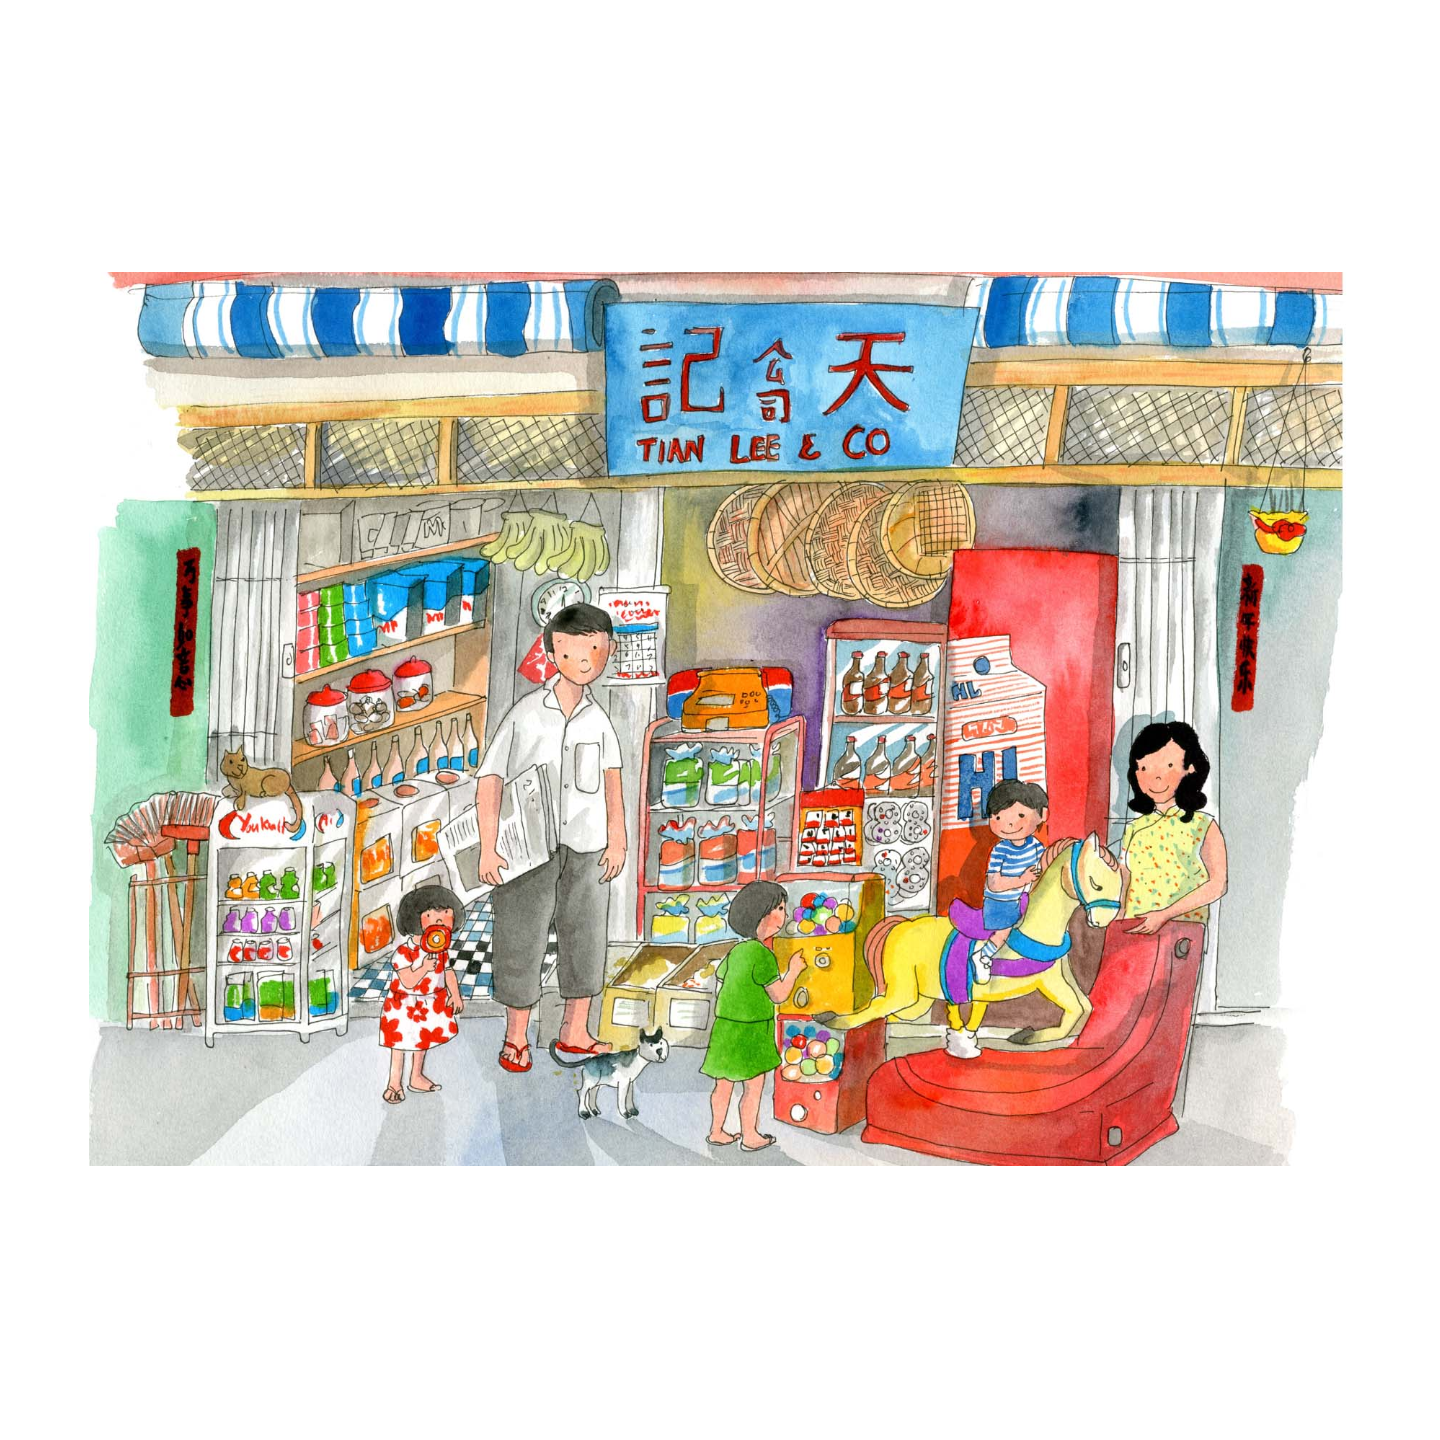 Heritage Postcard Provision Shop by Patrick Yee